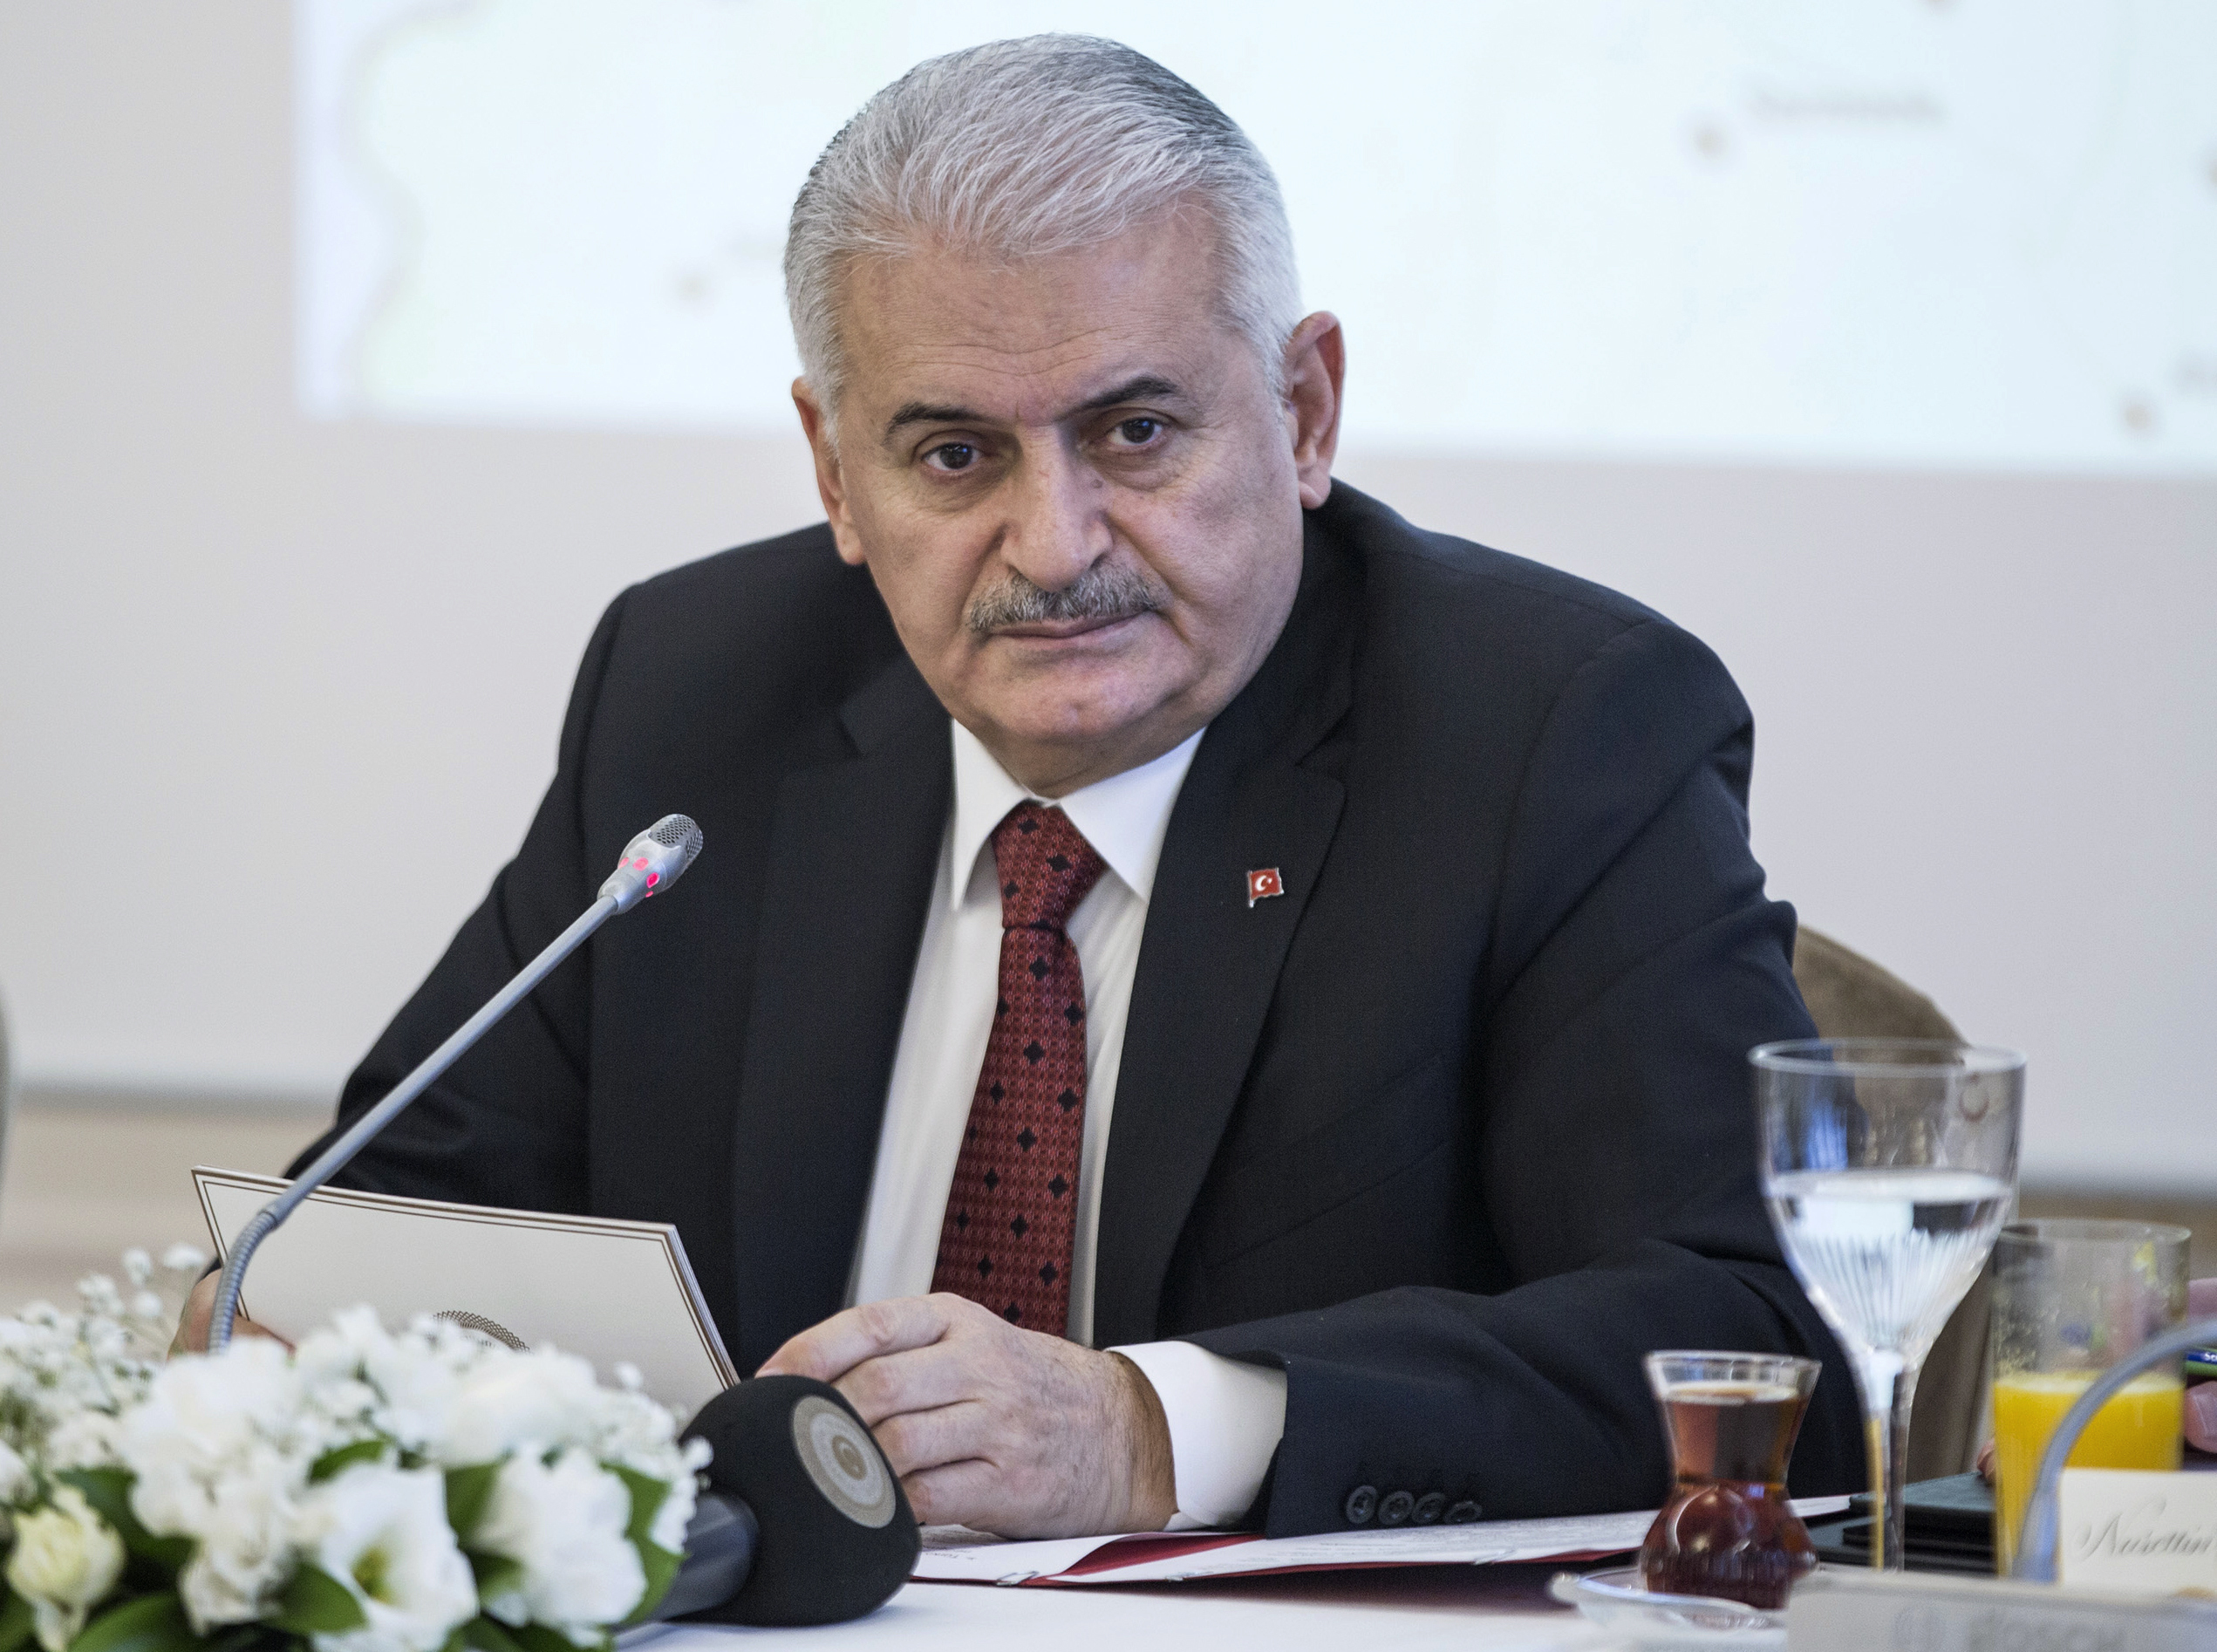 Turkish Prime Minister Binali Yildirim listens during a meeting with journalists in Istanbul, Jan. 21, 2018.